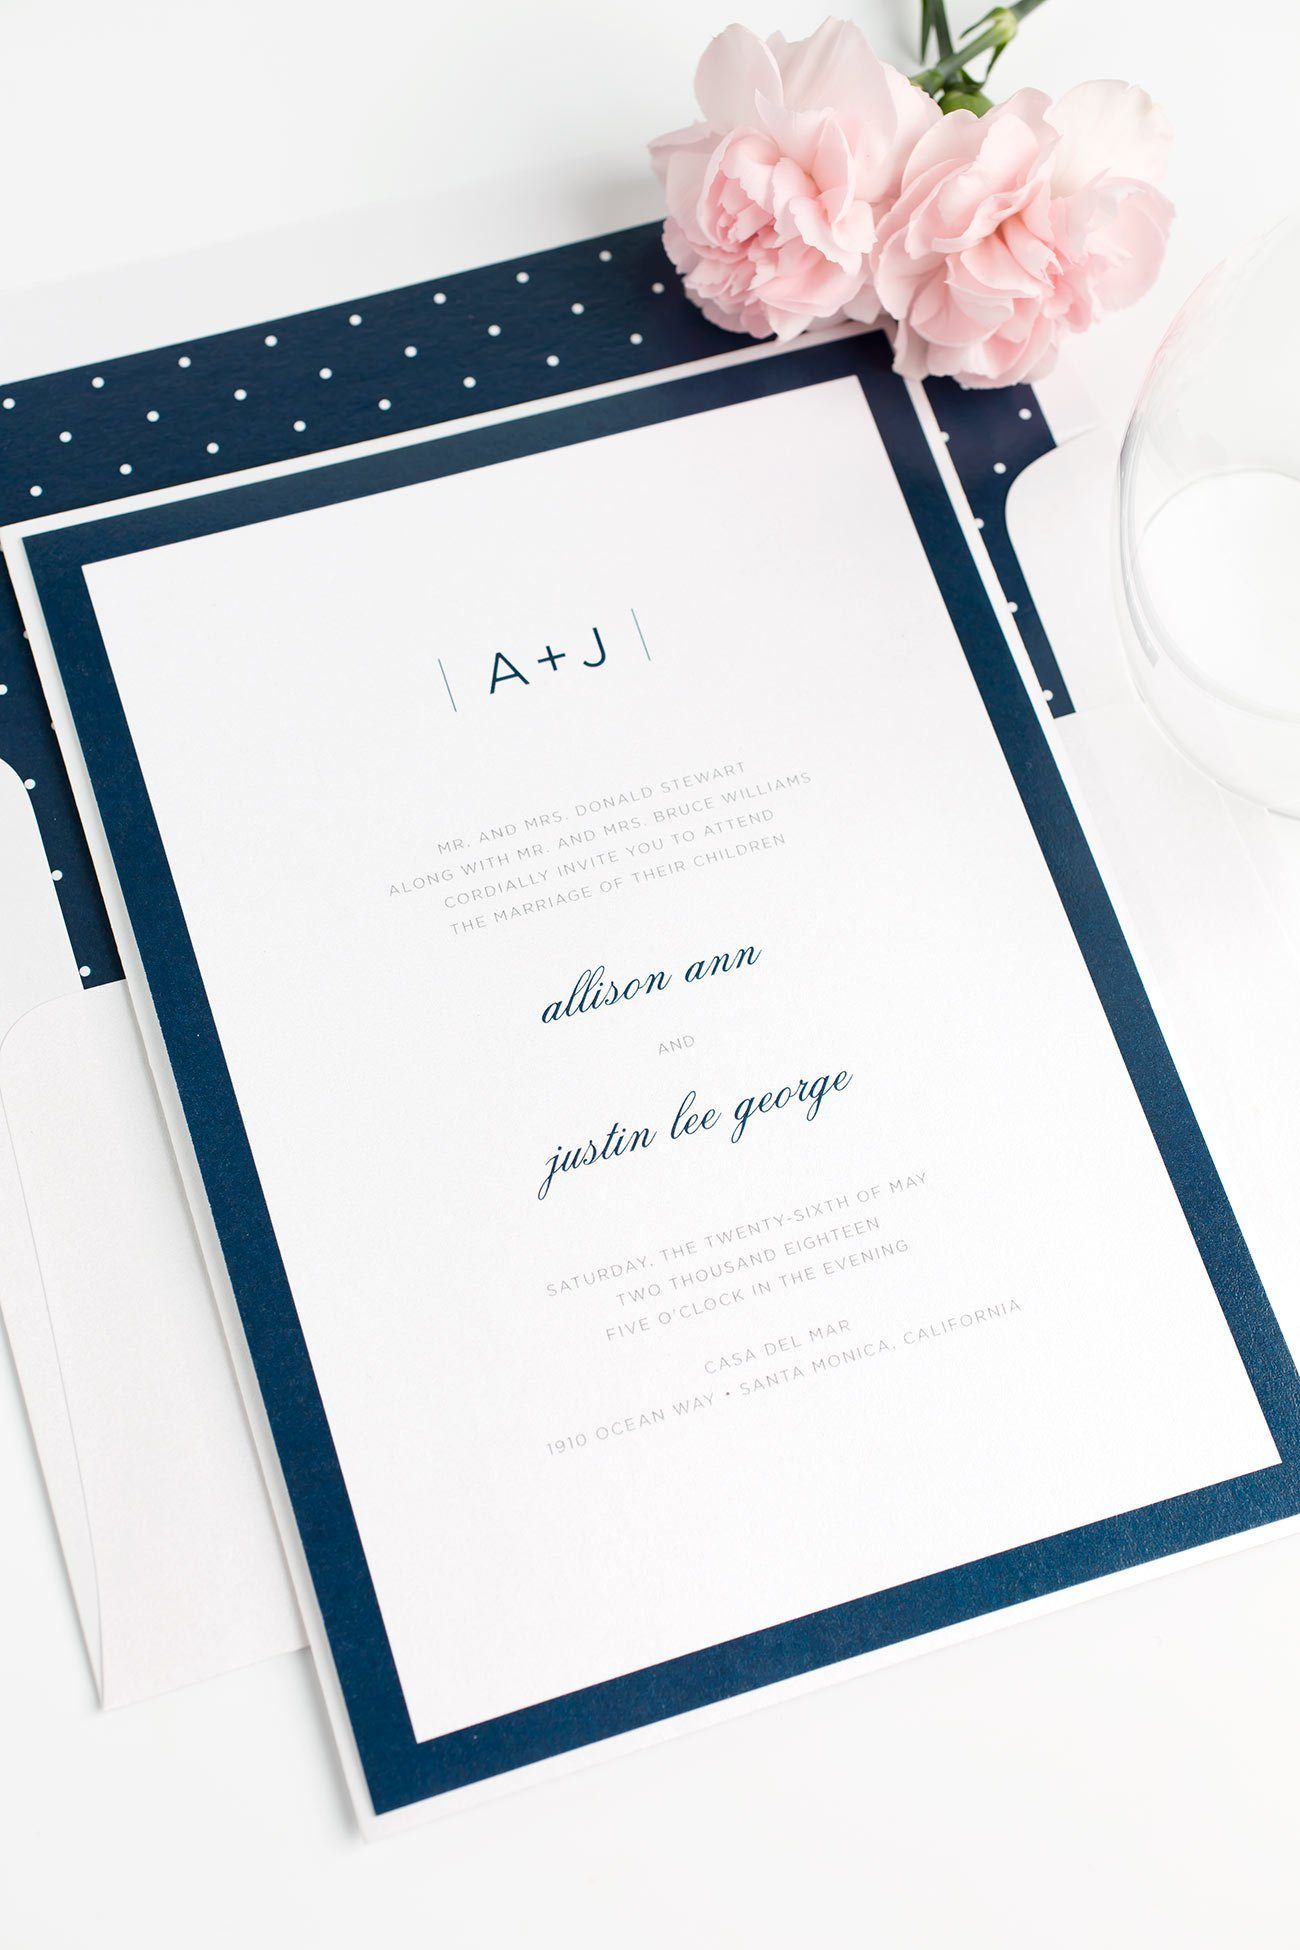 Sophisticated Modern Wedding Invitations in Navy Blue – Wedding ...